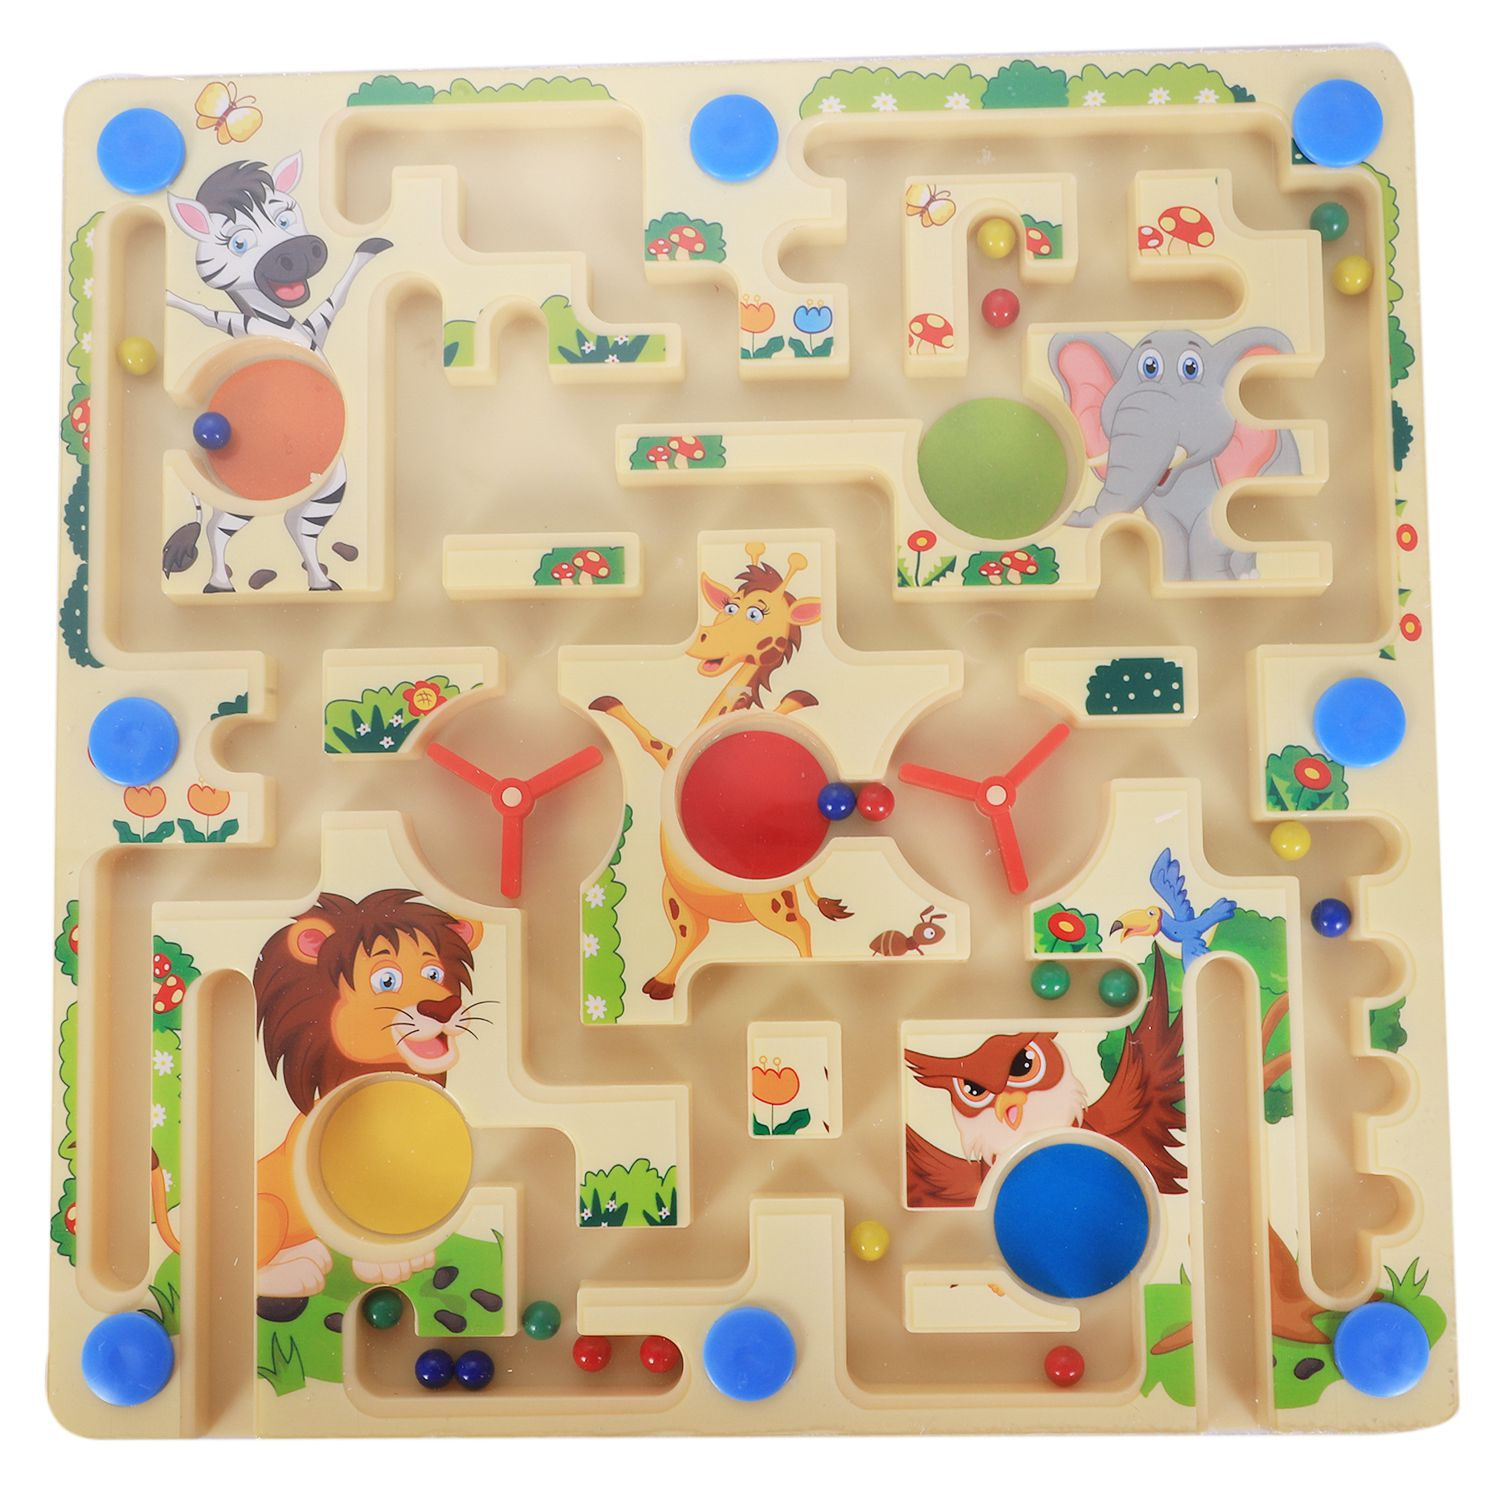 MWZ 2 In 1 Magnetic Maze With Flying Chess Double-faced Labyrinth Maze Educational Interactive Toys, Forest